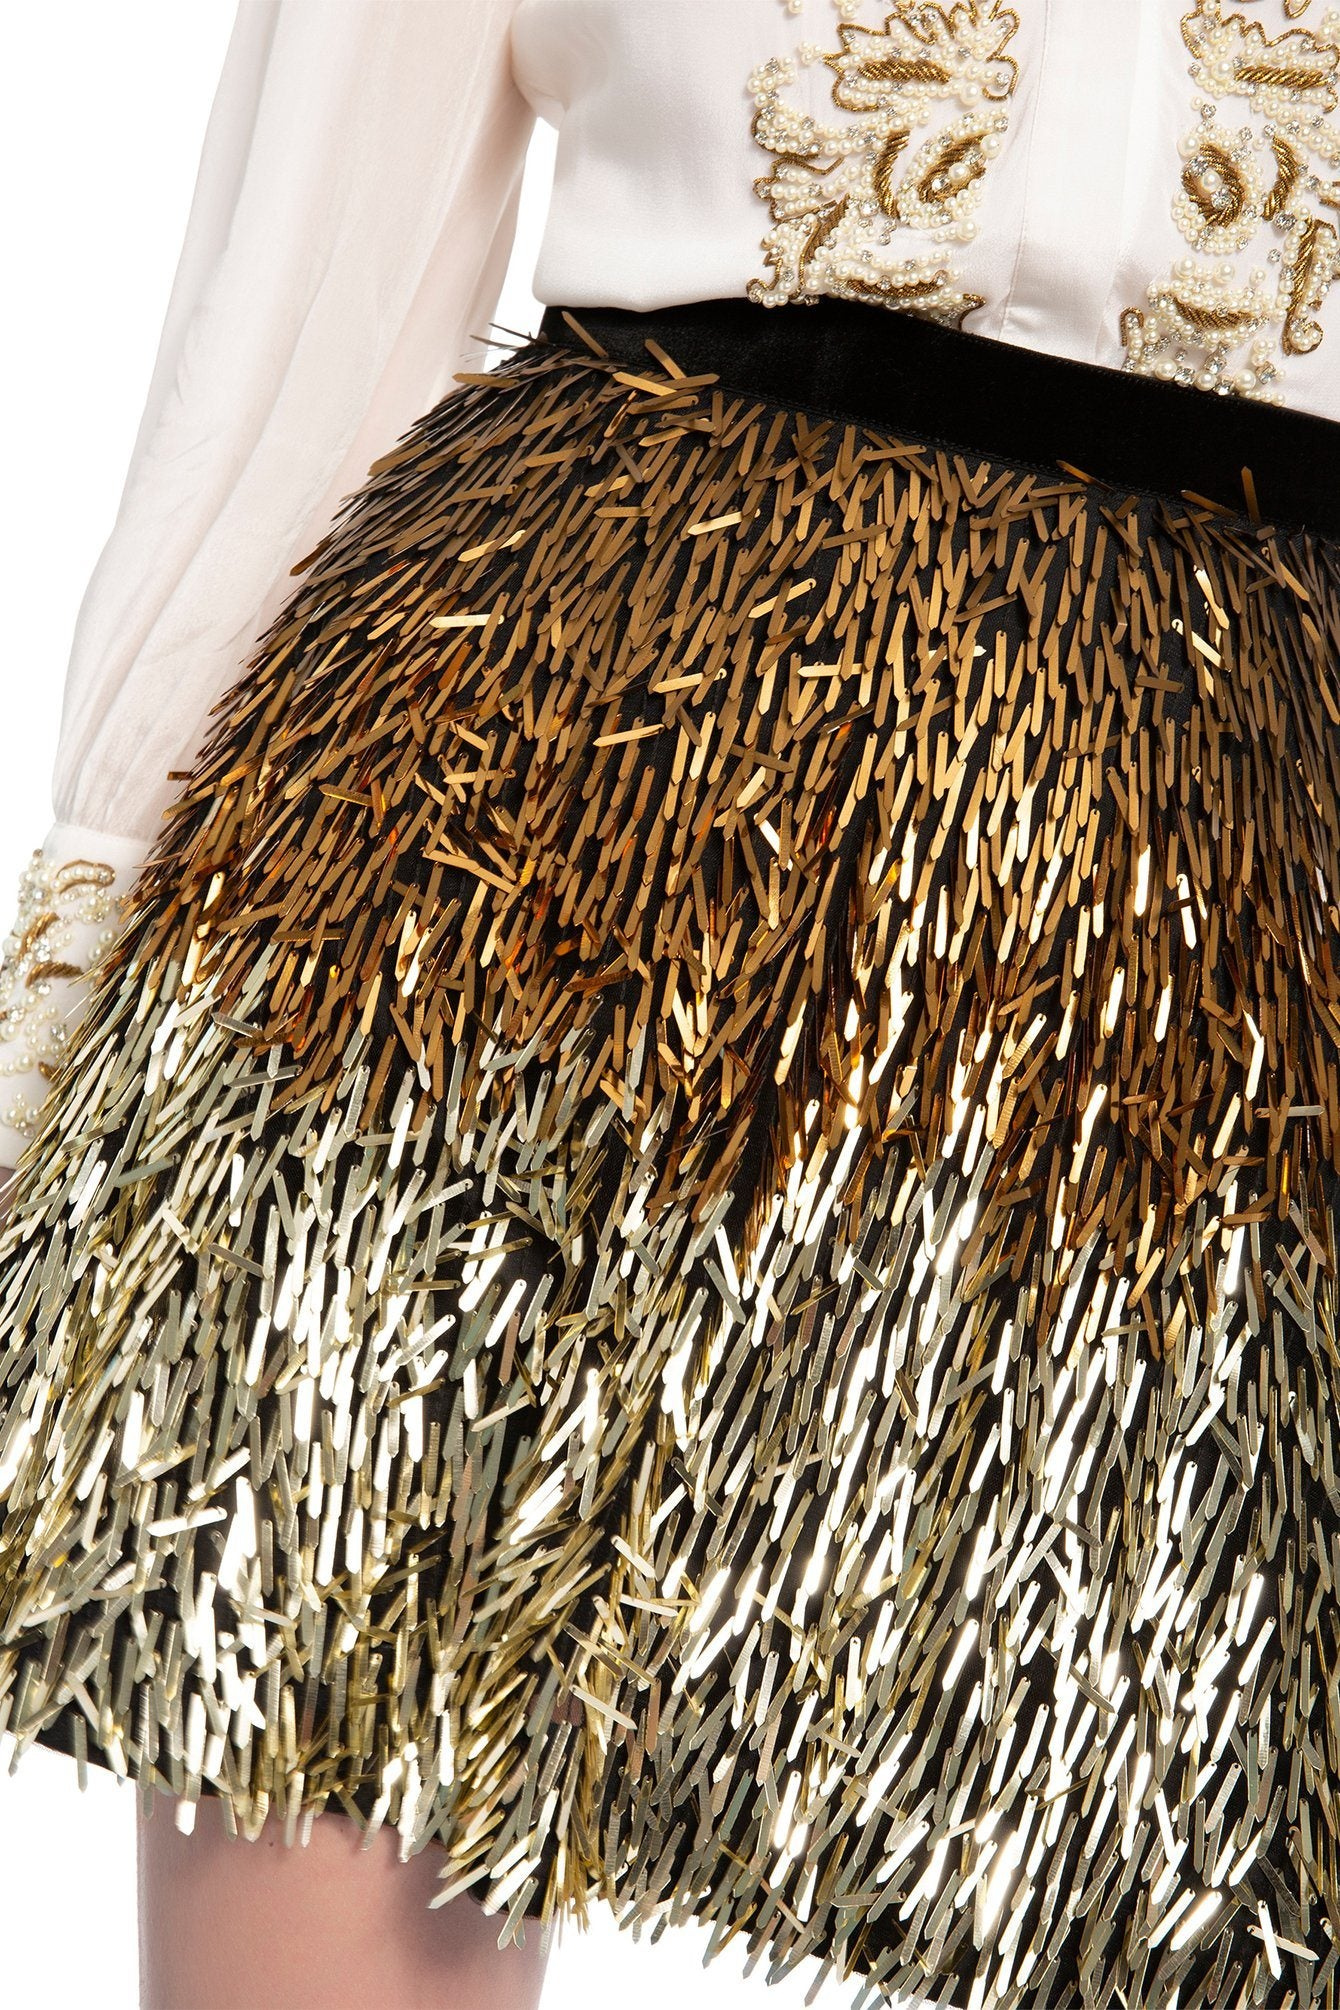 ALICE + OLIVIA | Cina Embellished Skirt - Black/Gold Ombre